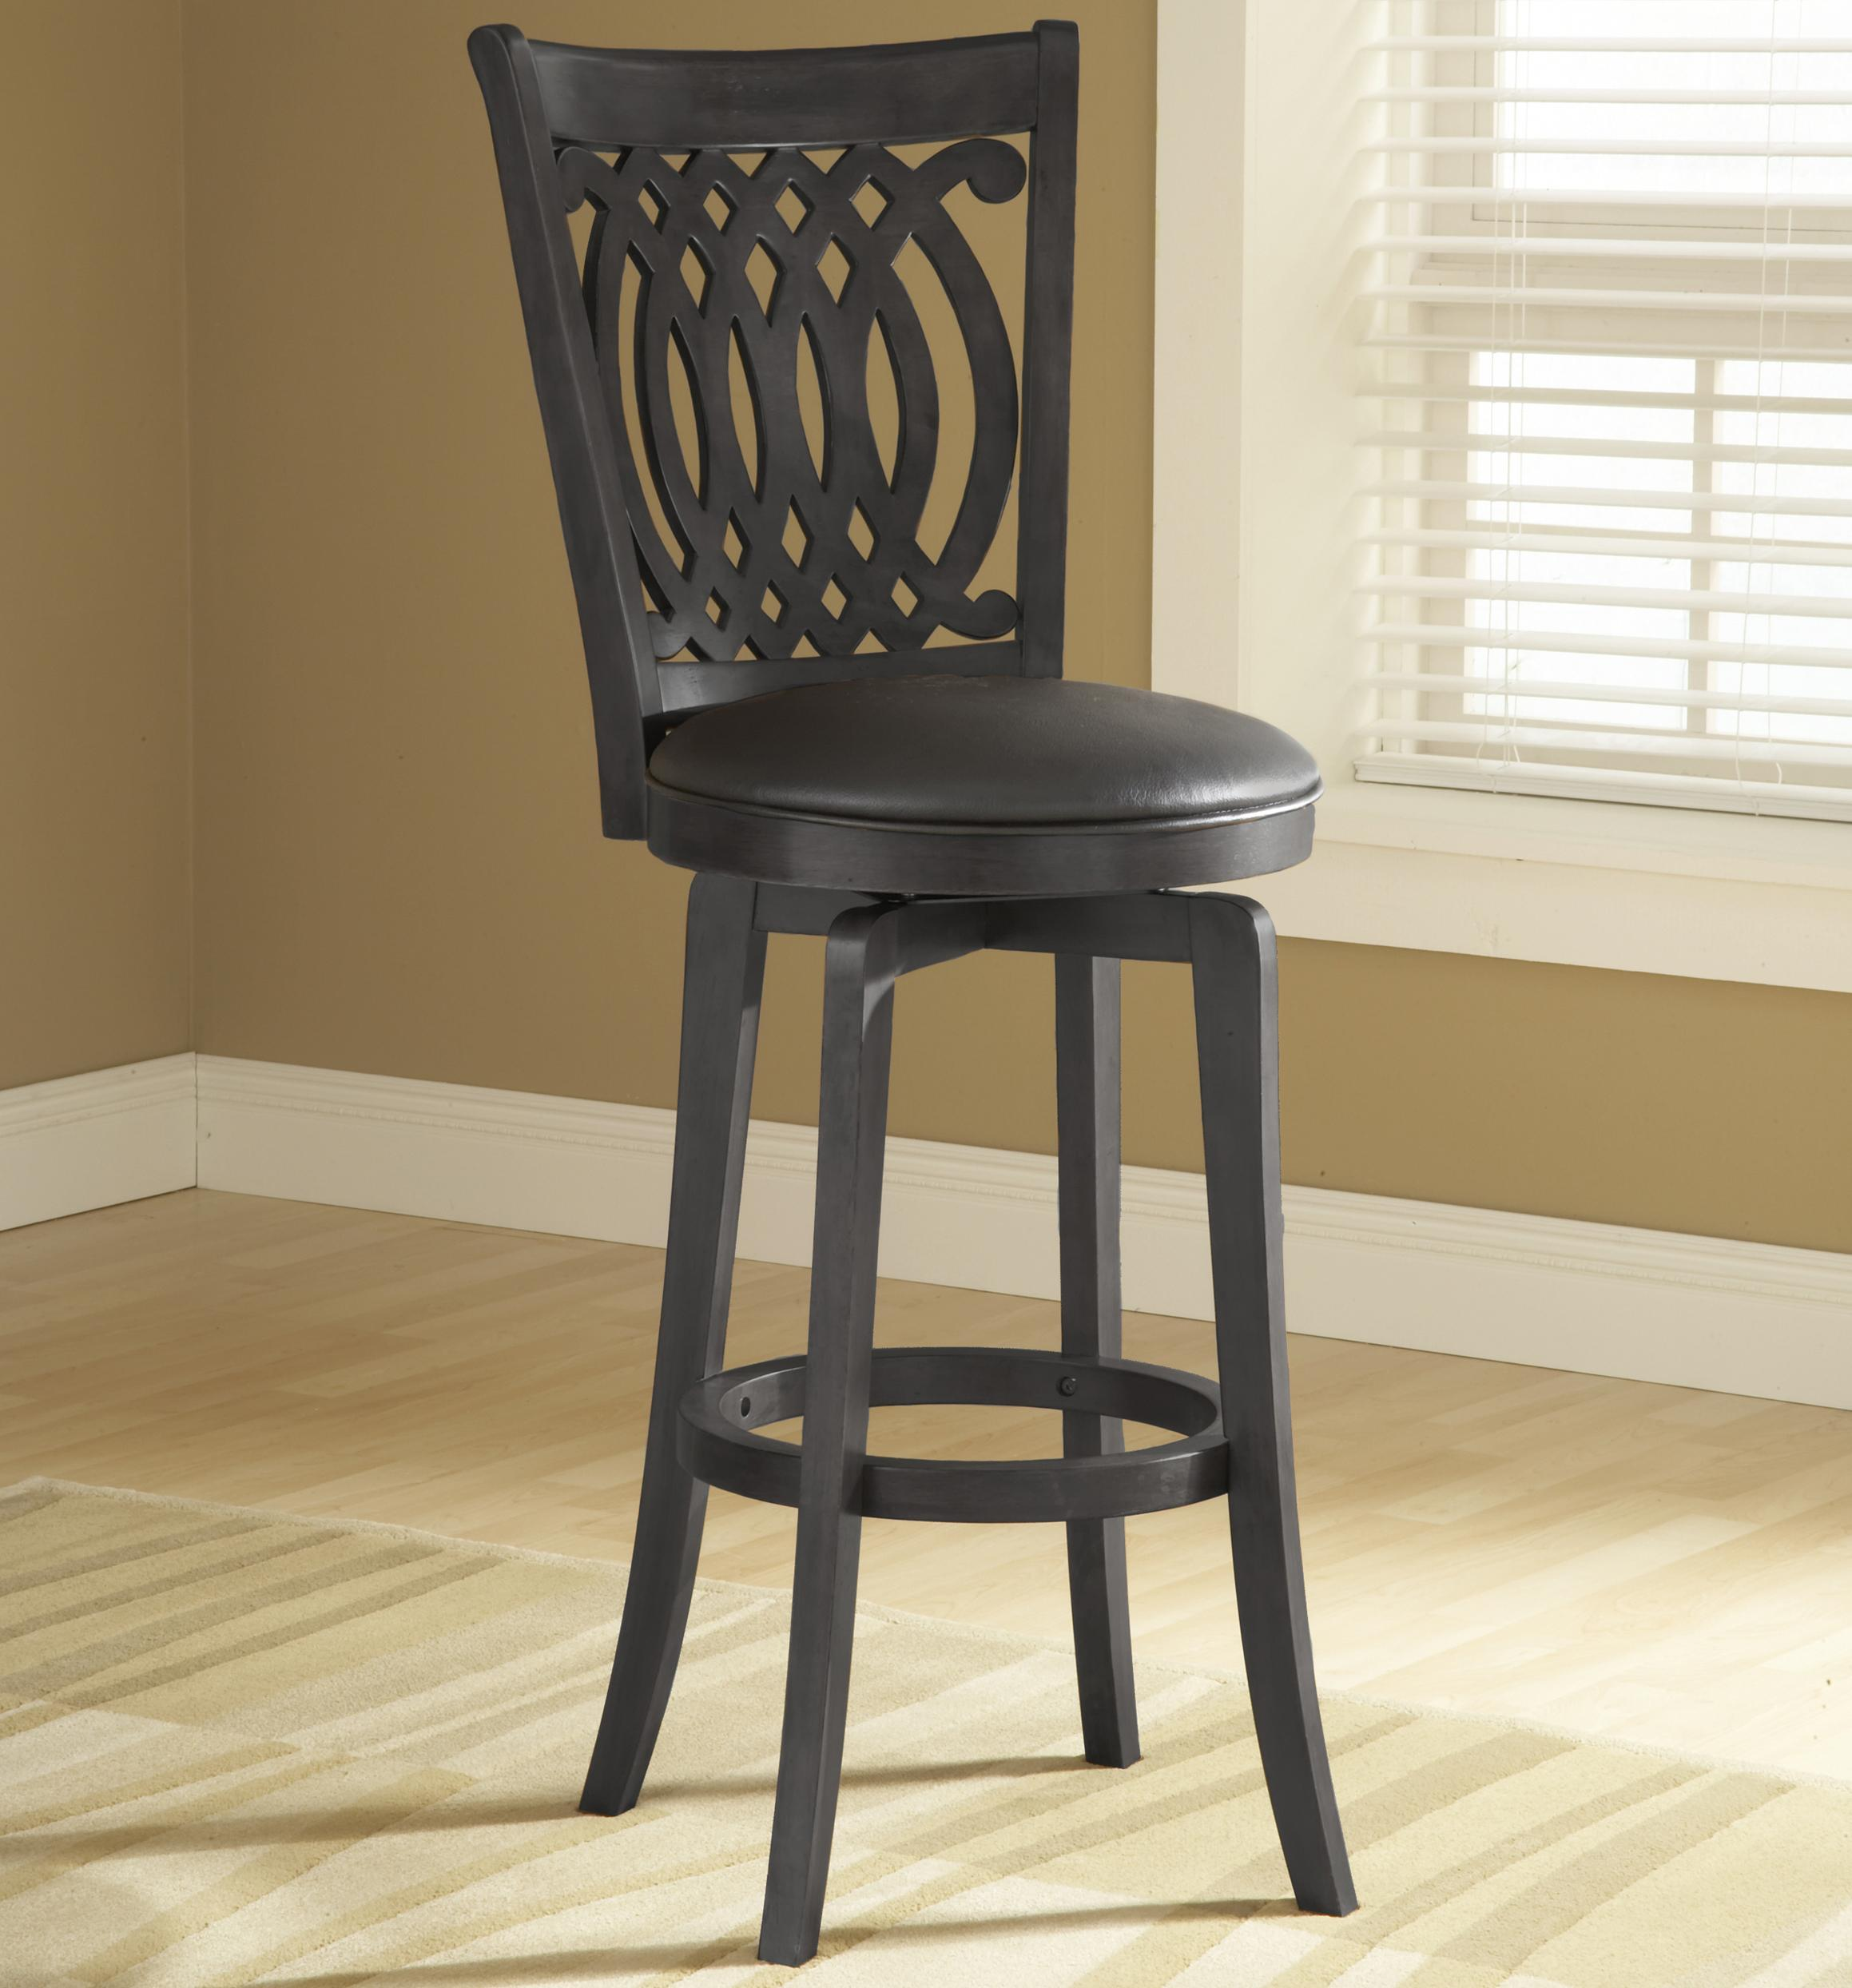 "Hillsdale Wood Stools 24"" Counter Height Van Draus Swivel Stool - Item Number: 4975-831"